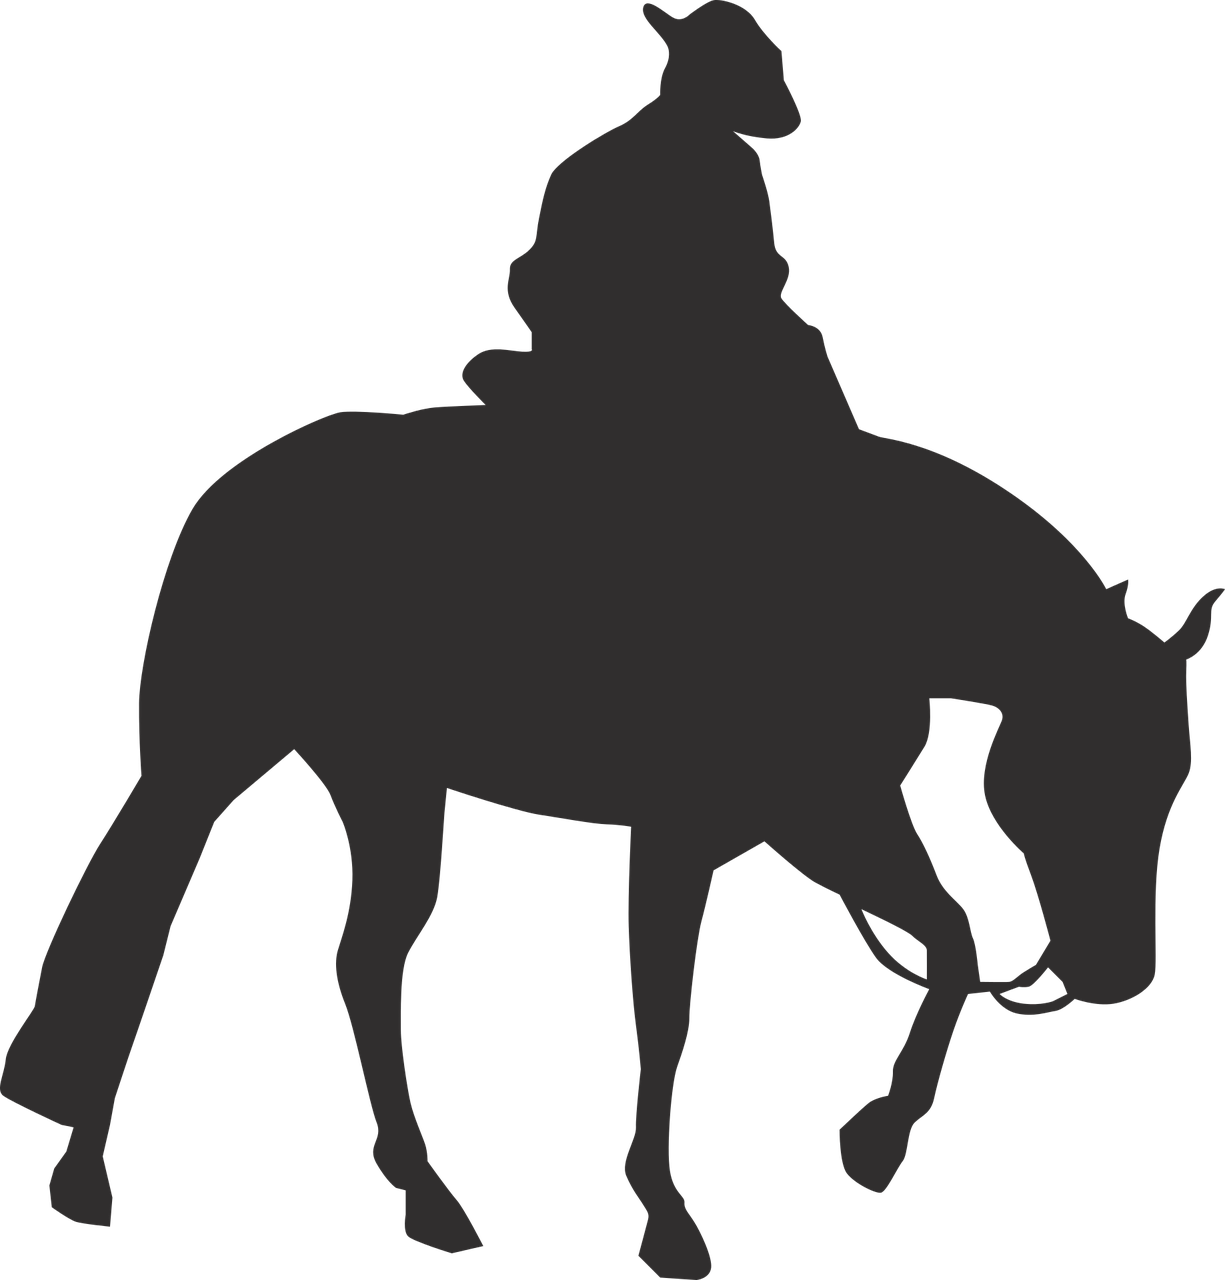 Free clipart mountains with cowboys and horses transparent download Rocky Mountain Horse Pony Vector graphics Equestrian Western riding ... transparent download